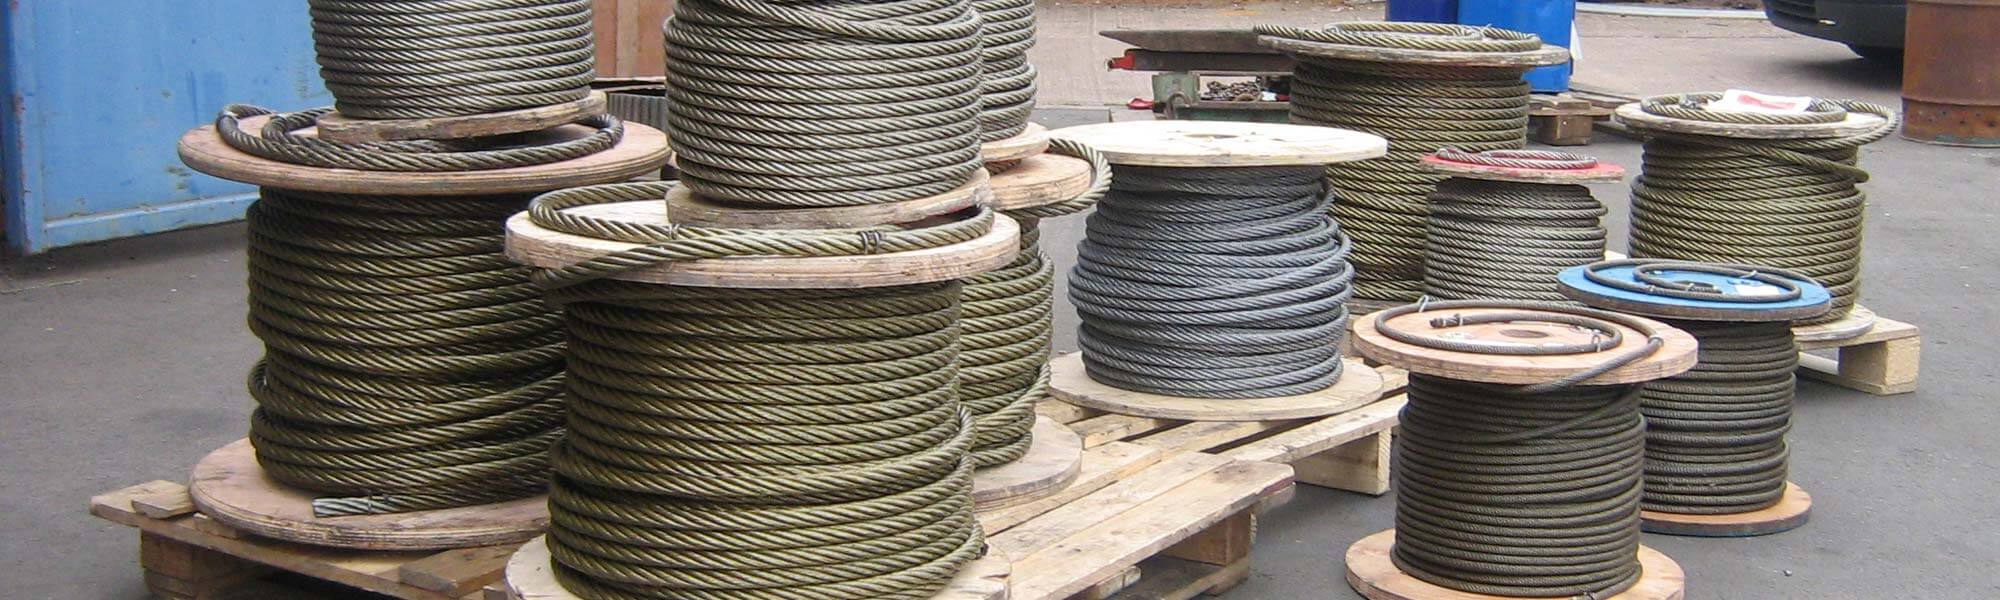 Metal Wire Suppliers : Wire rope suppliers stainless steel shop rsd